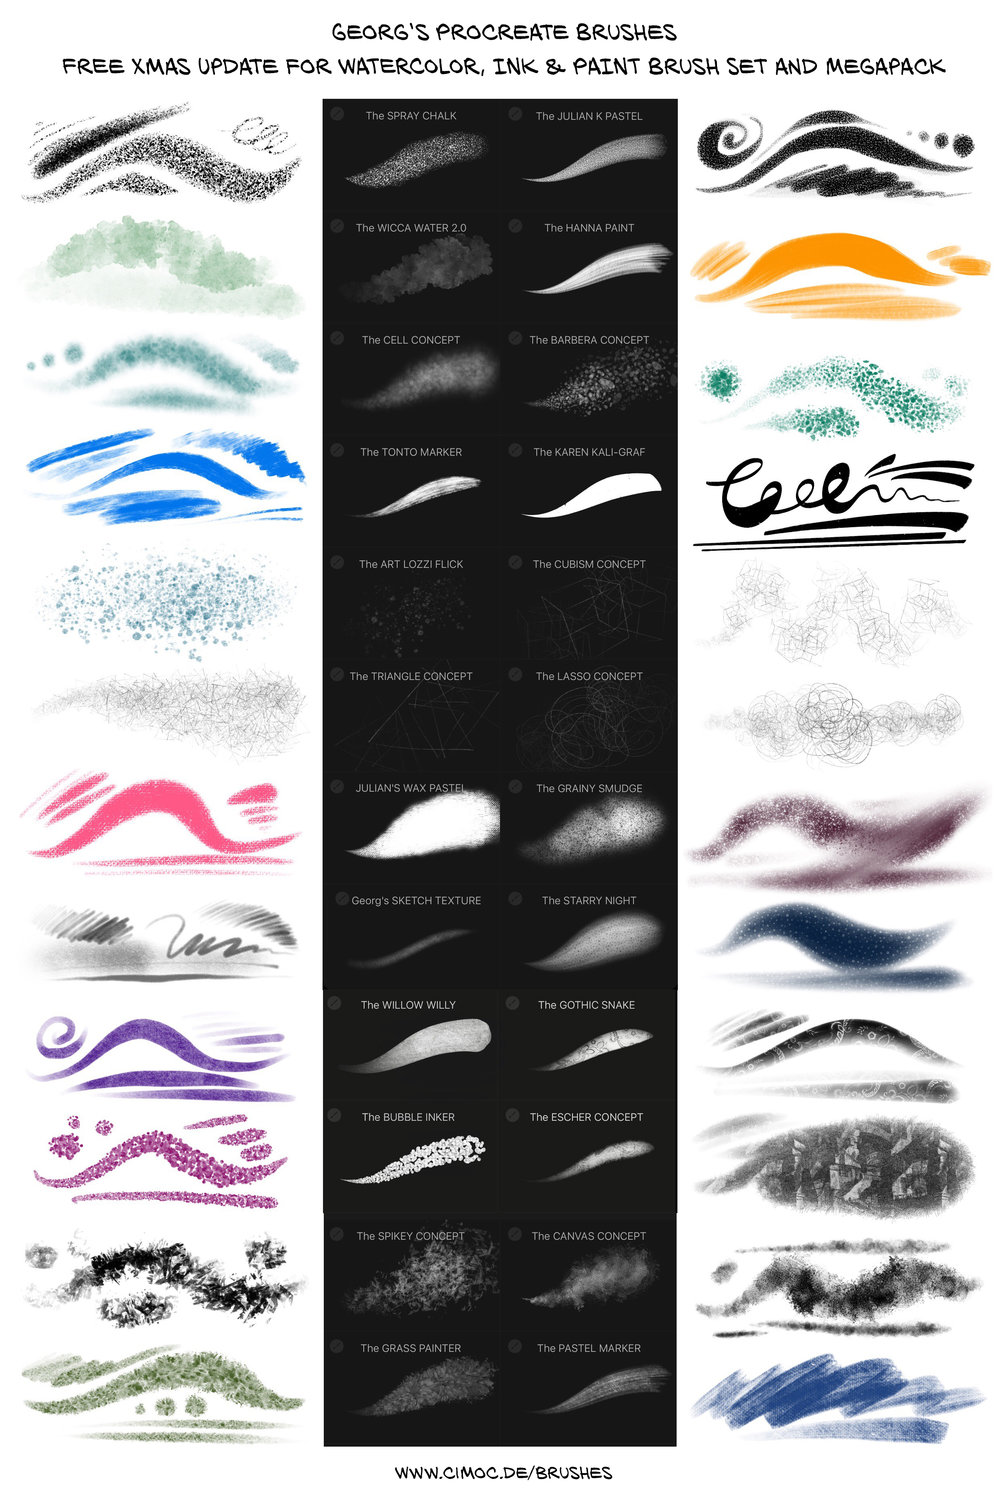 XMAS_Brushes_Cheat_Sheet_01.jpg